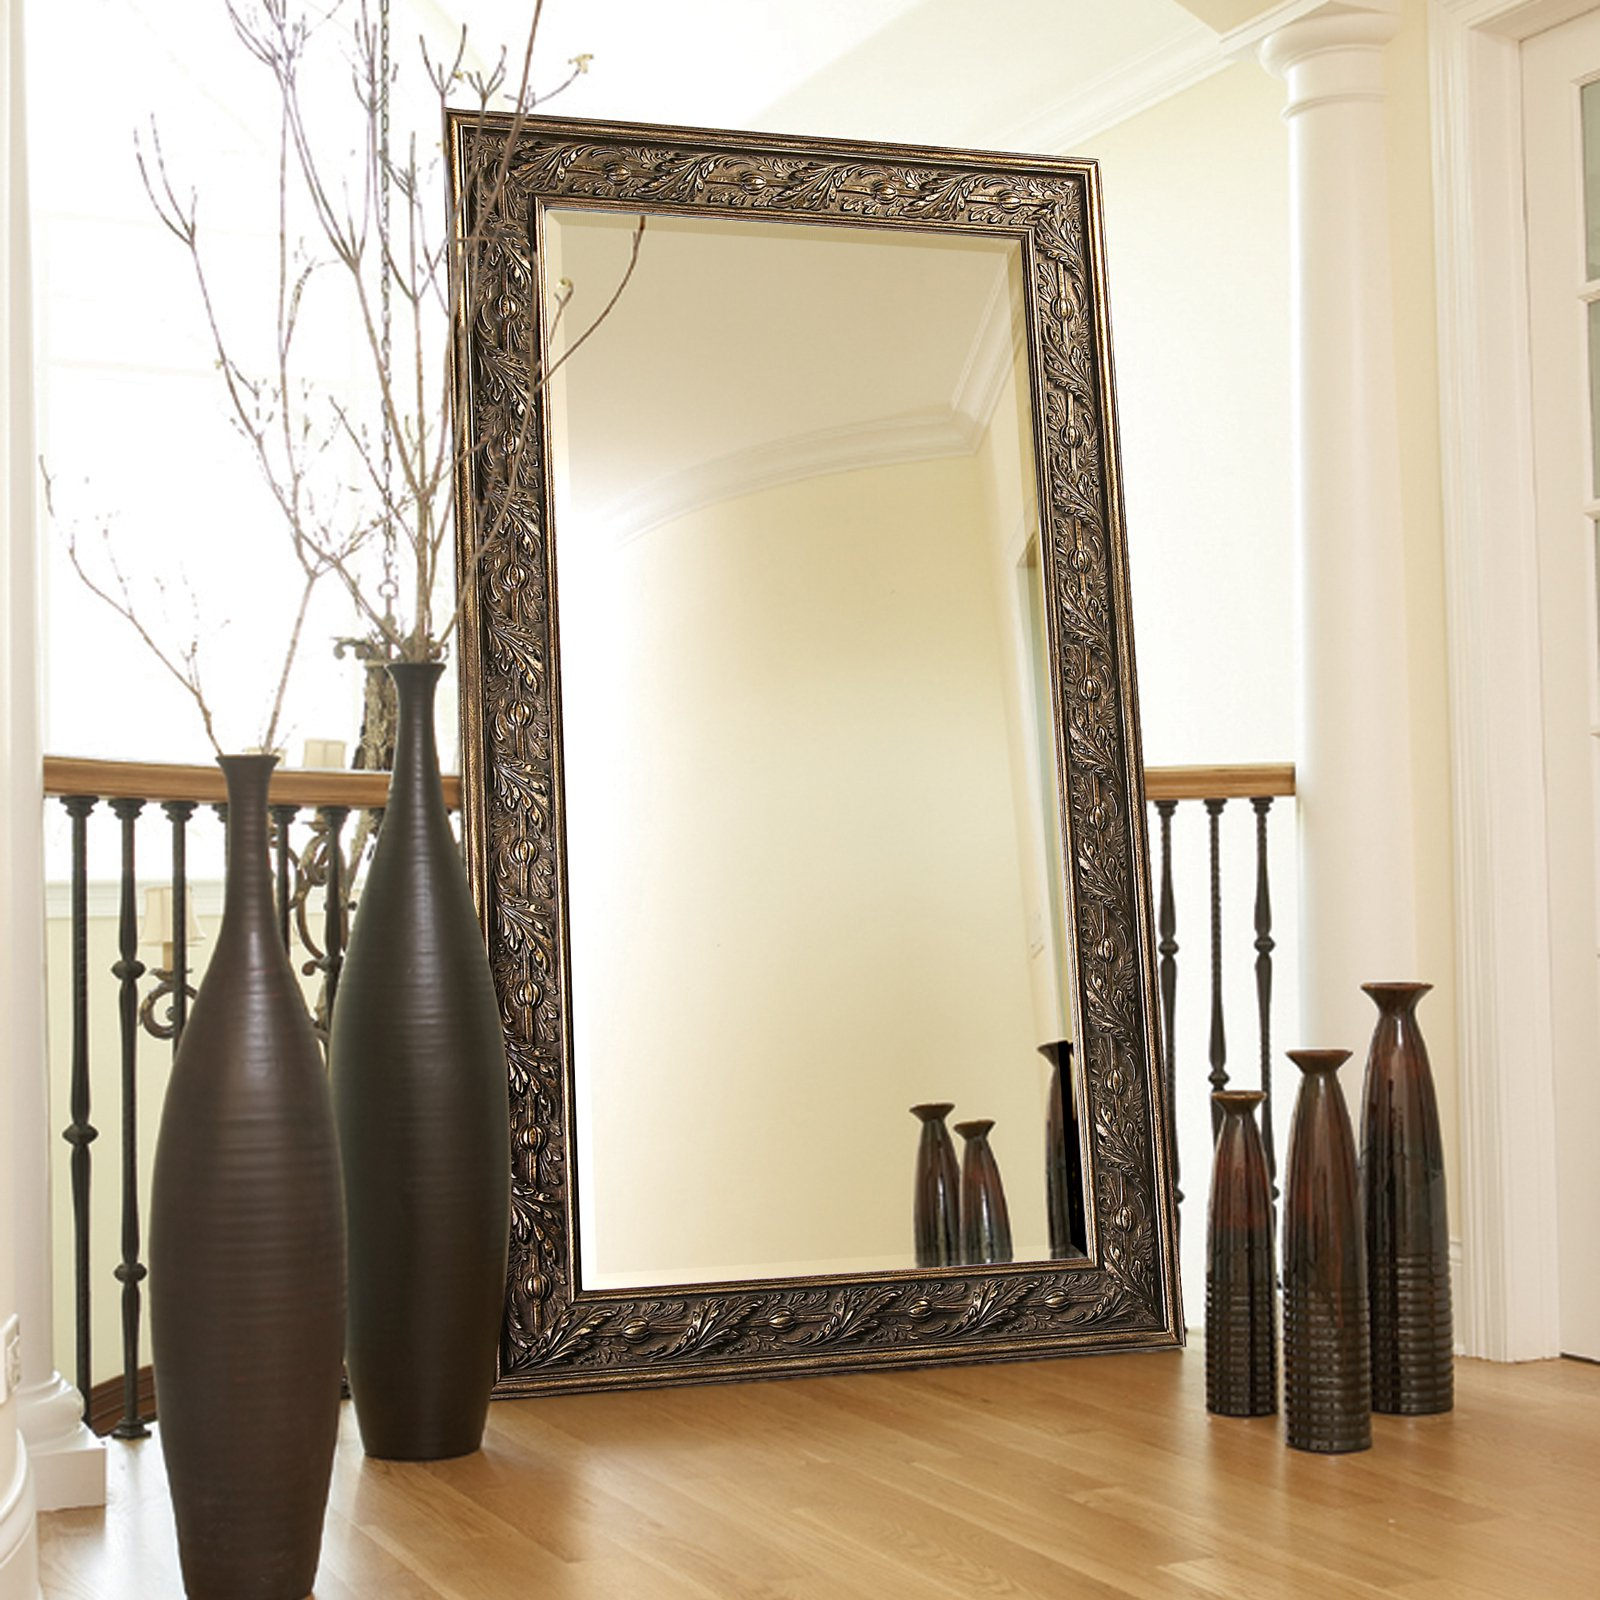 Accessories ideas wall mirror in living room mirror wall in living room - Mirror for living room wall ...